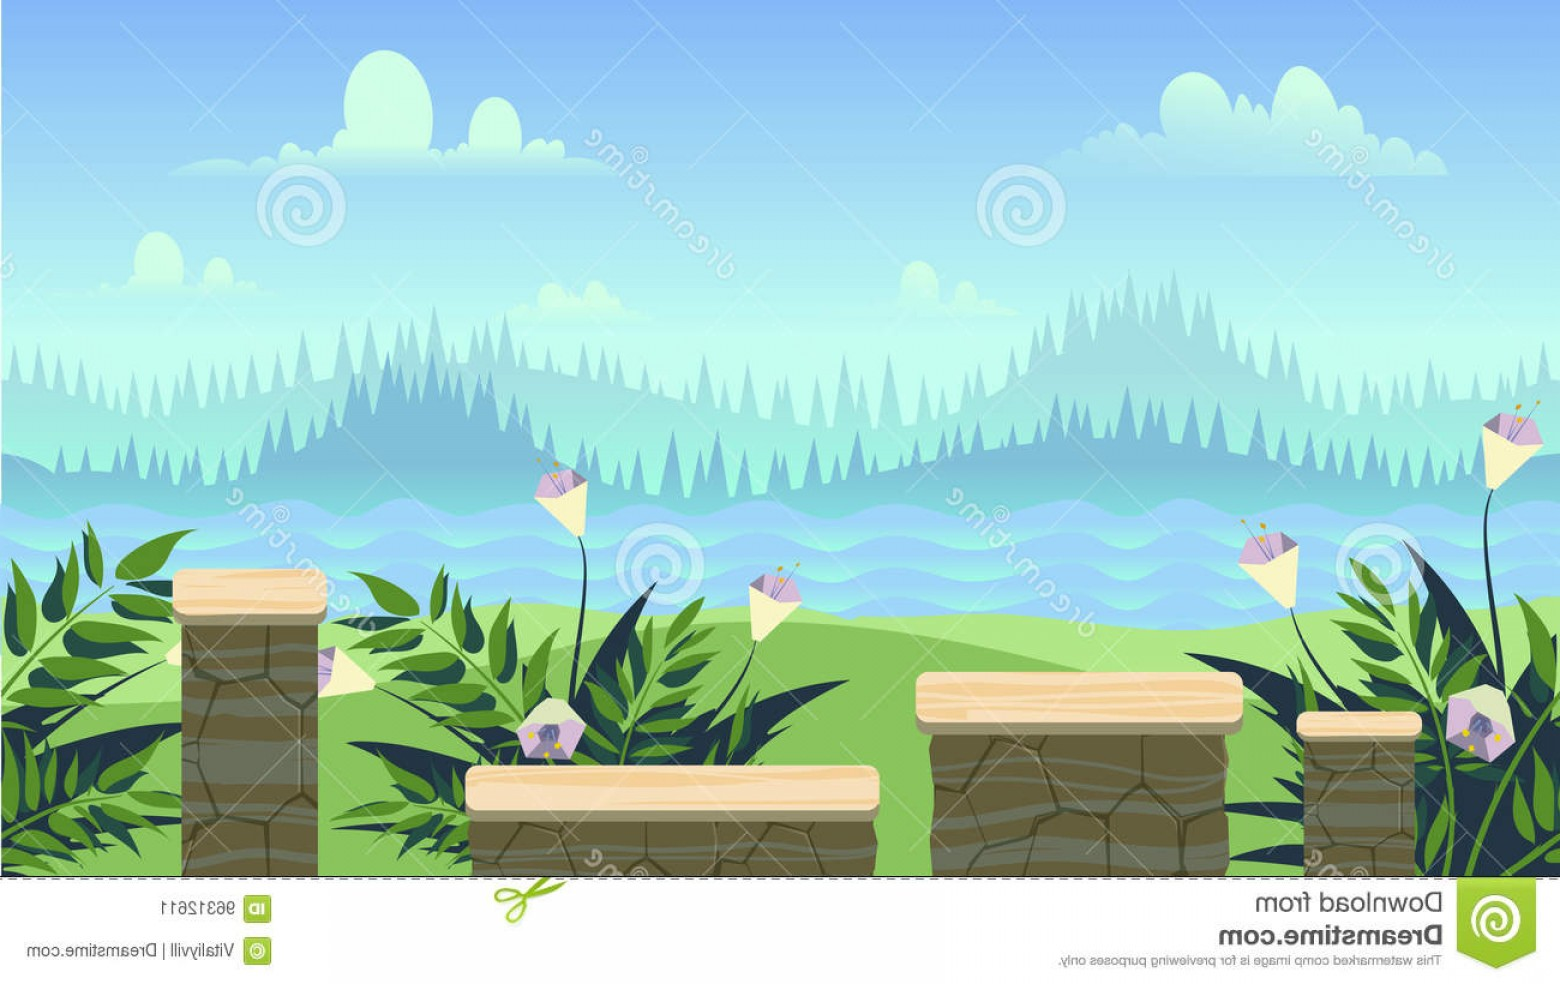 Vector Applications On Computers: Stock Illustration Seamless Background Games Mobile Applications Computers Vector Illustration Your Design Size Fits Devices May Image